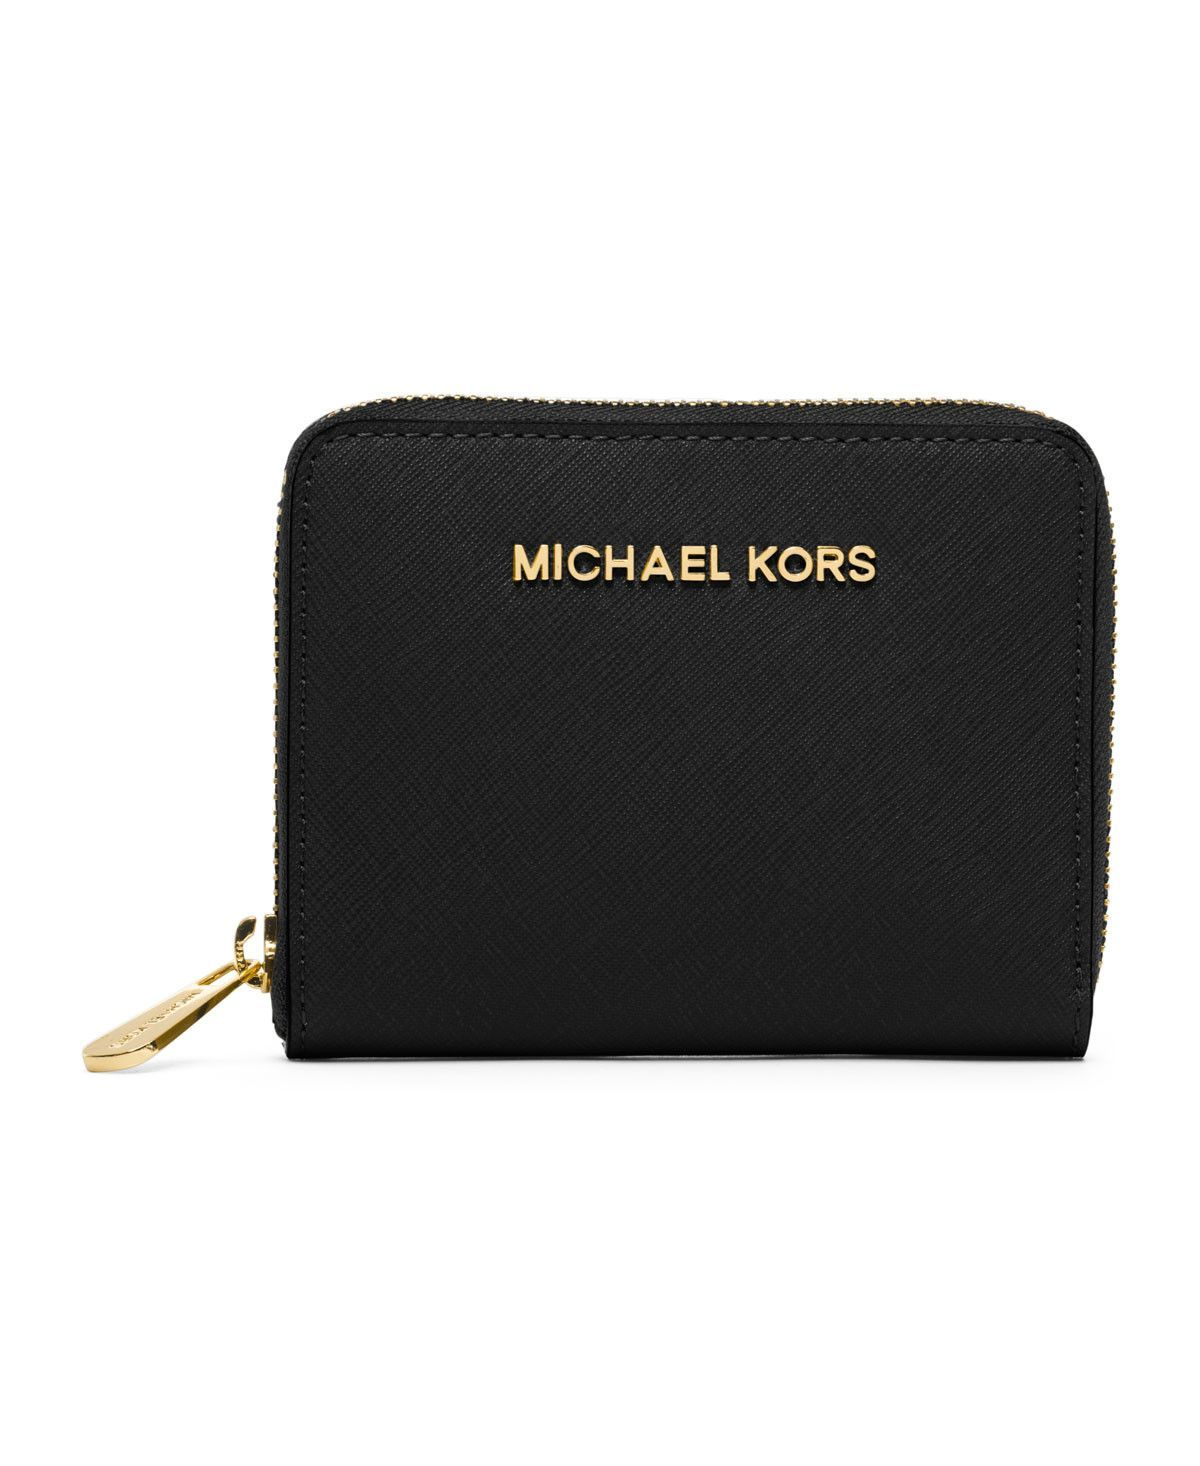 63c3eda54462 MICHAEL Michael Kors Medium Jet Set Zip-Around Travel Wallet in Black